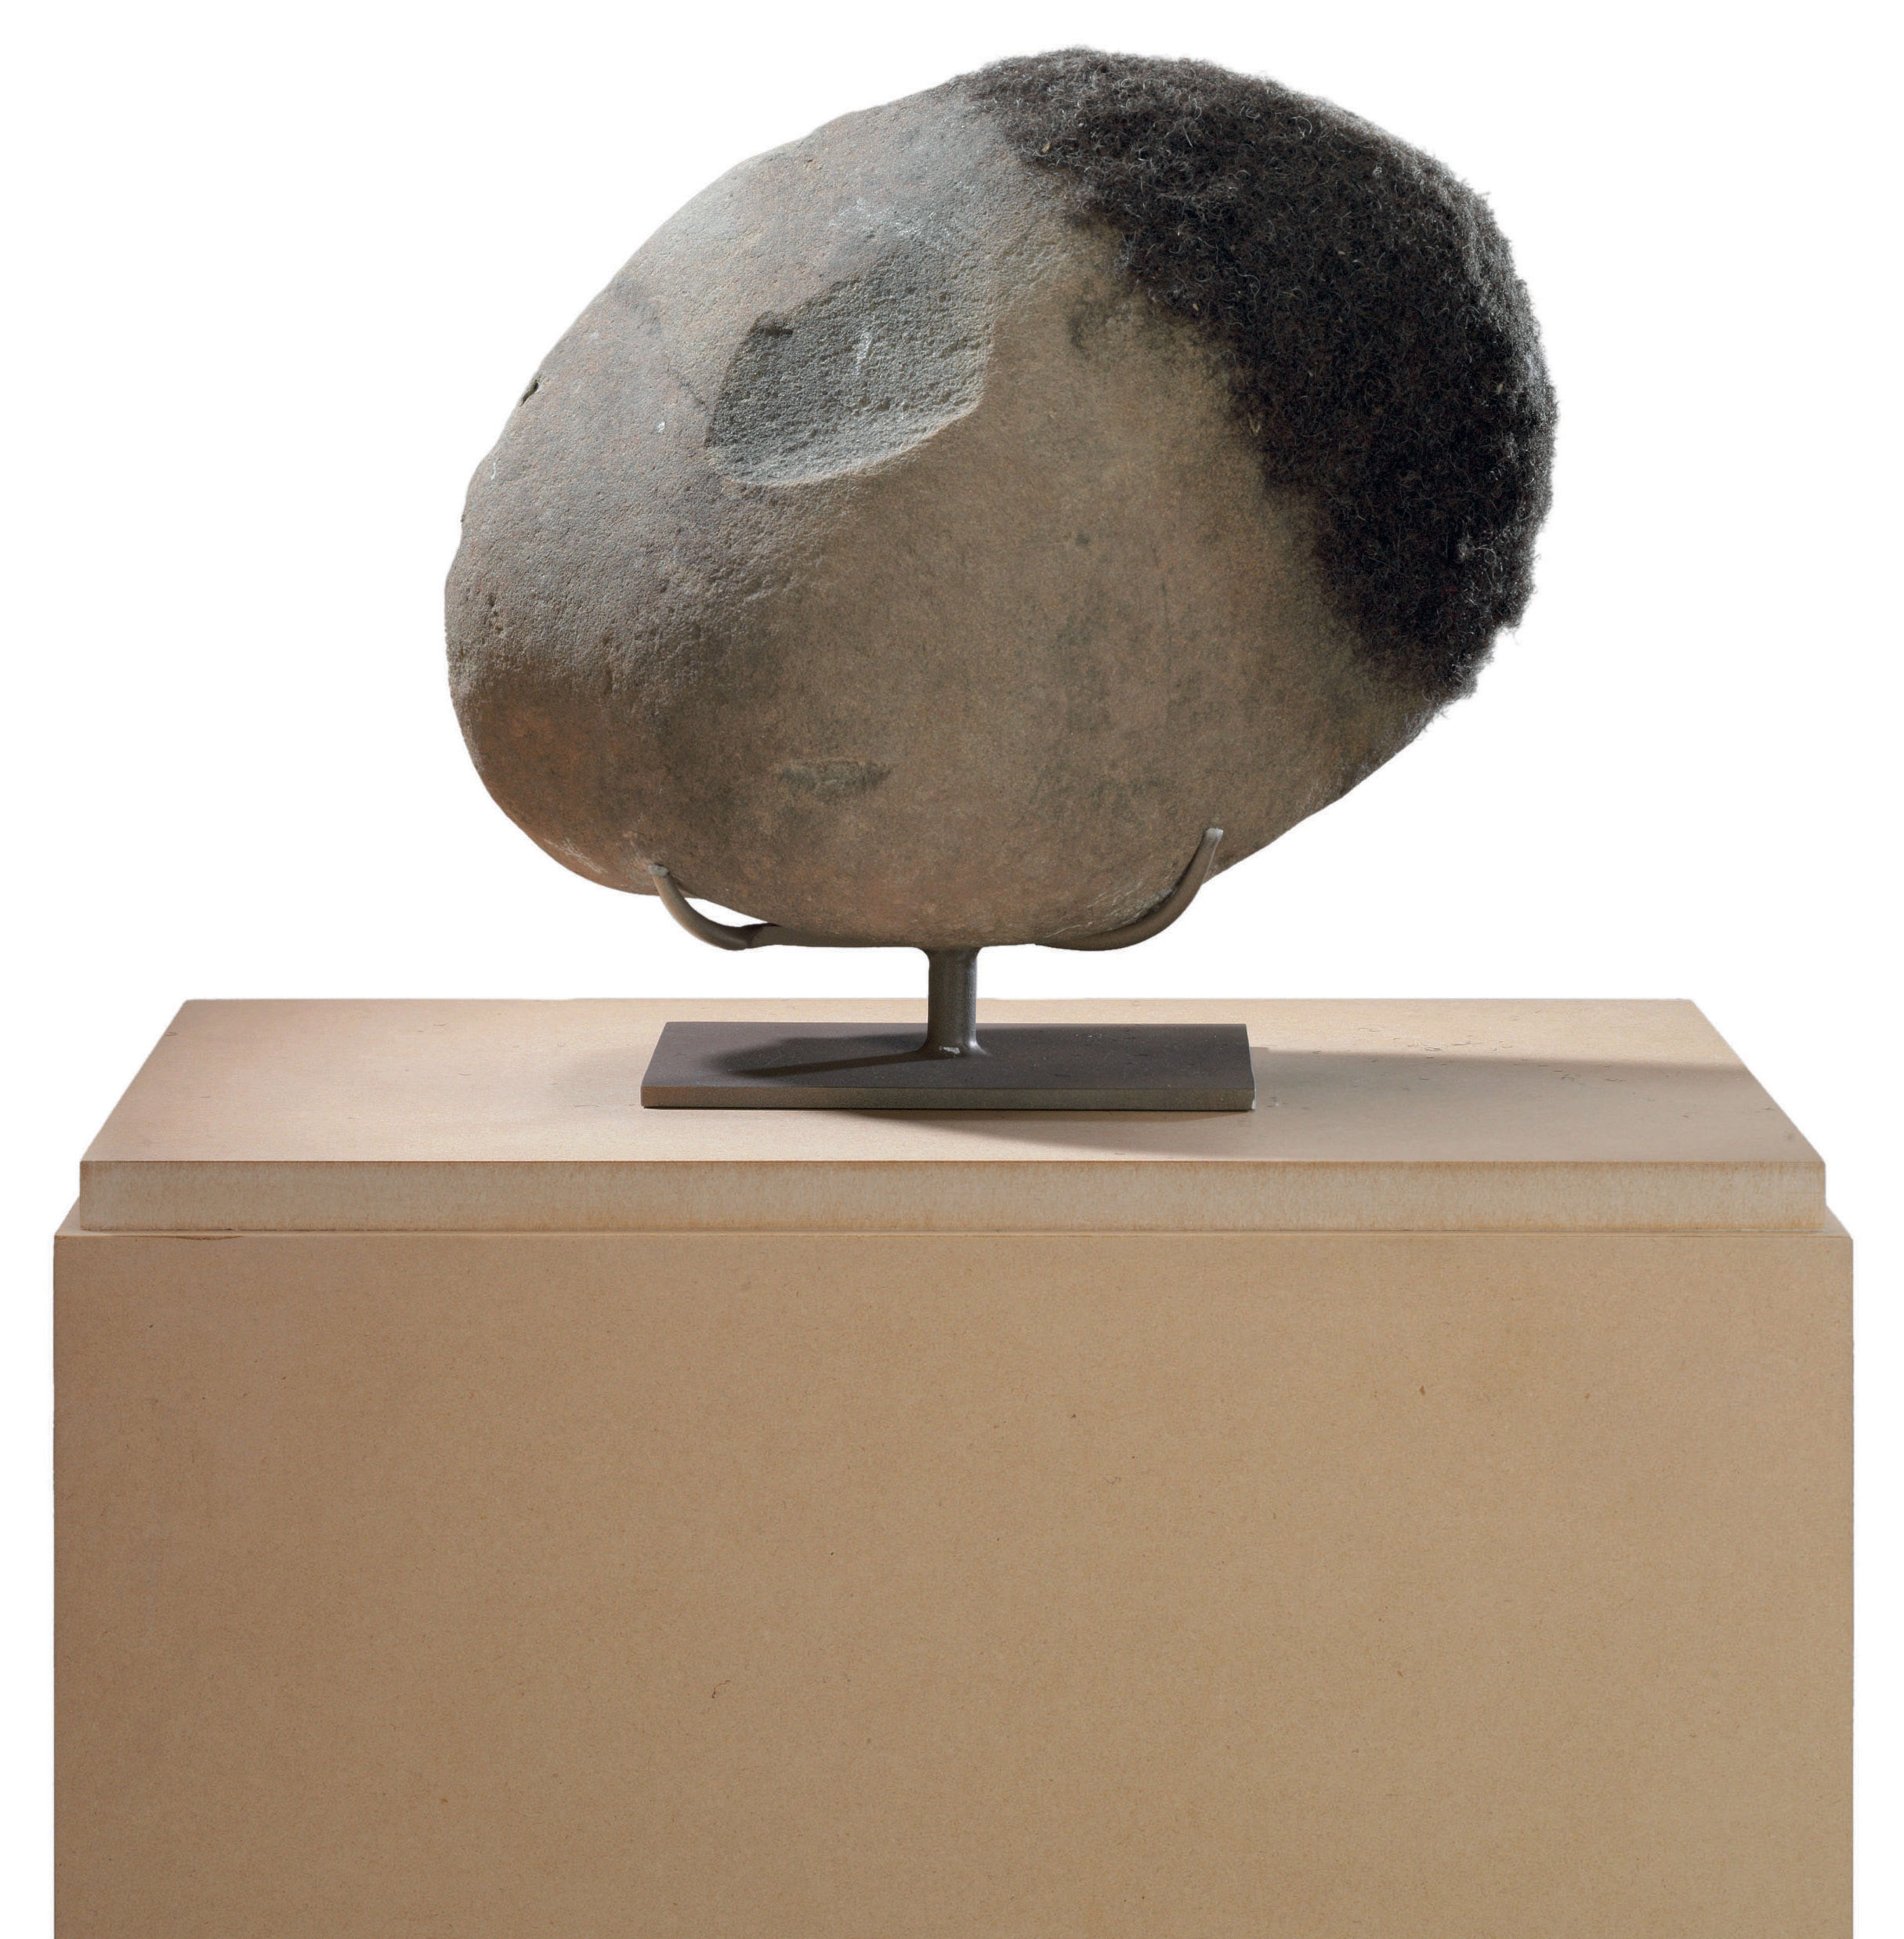 Untitled (Rock Head)